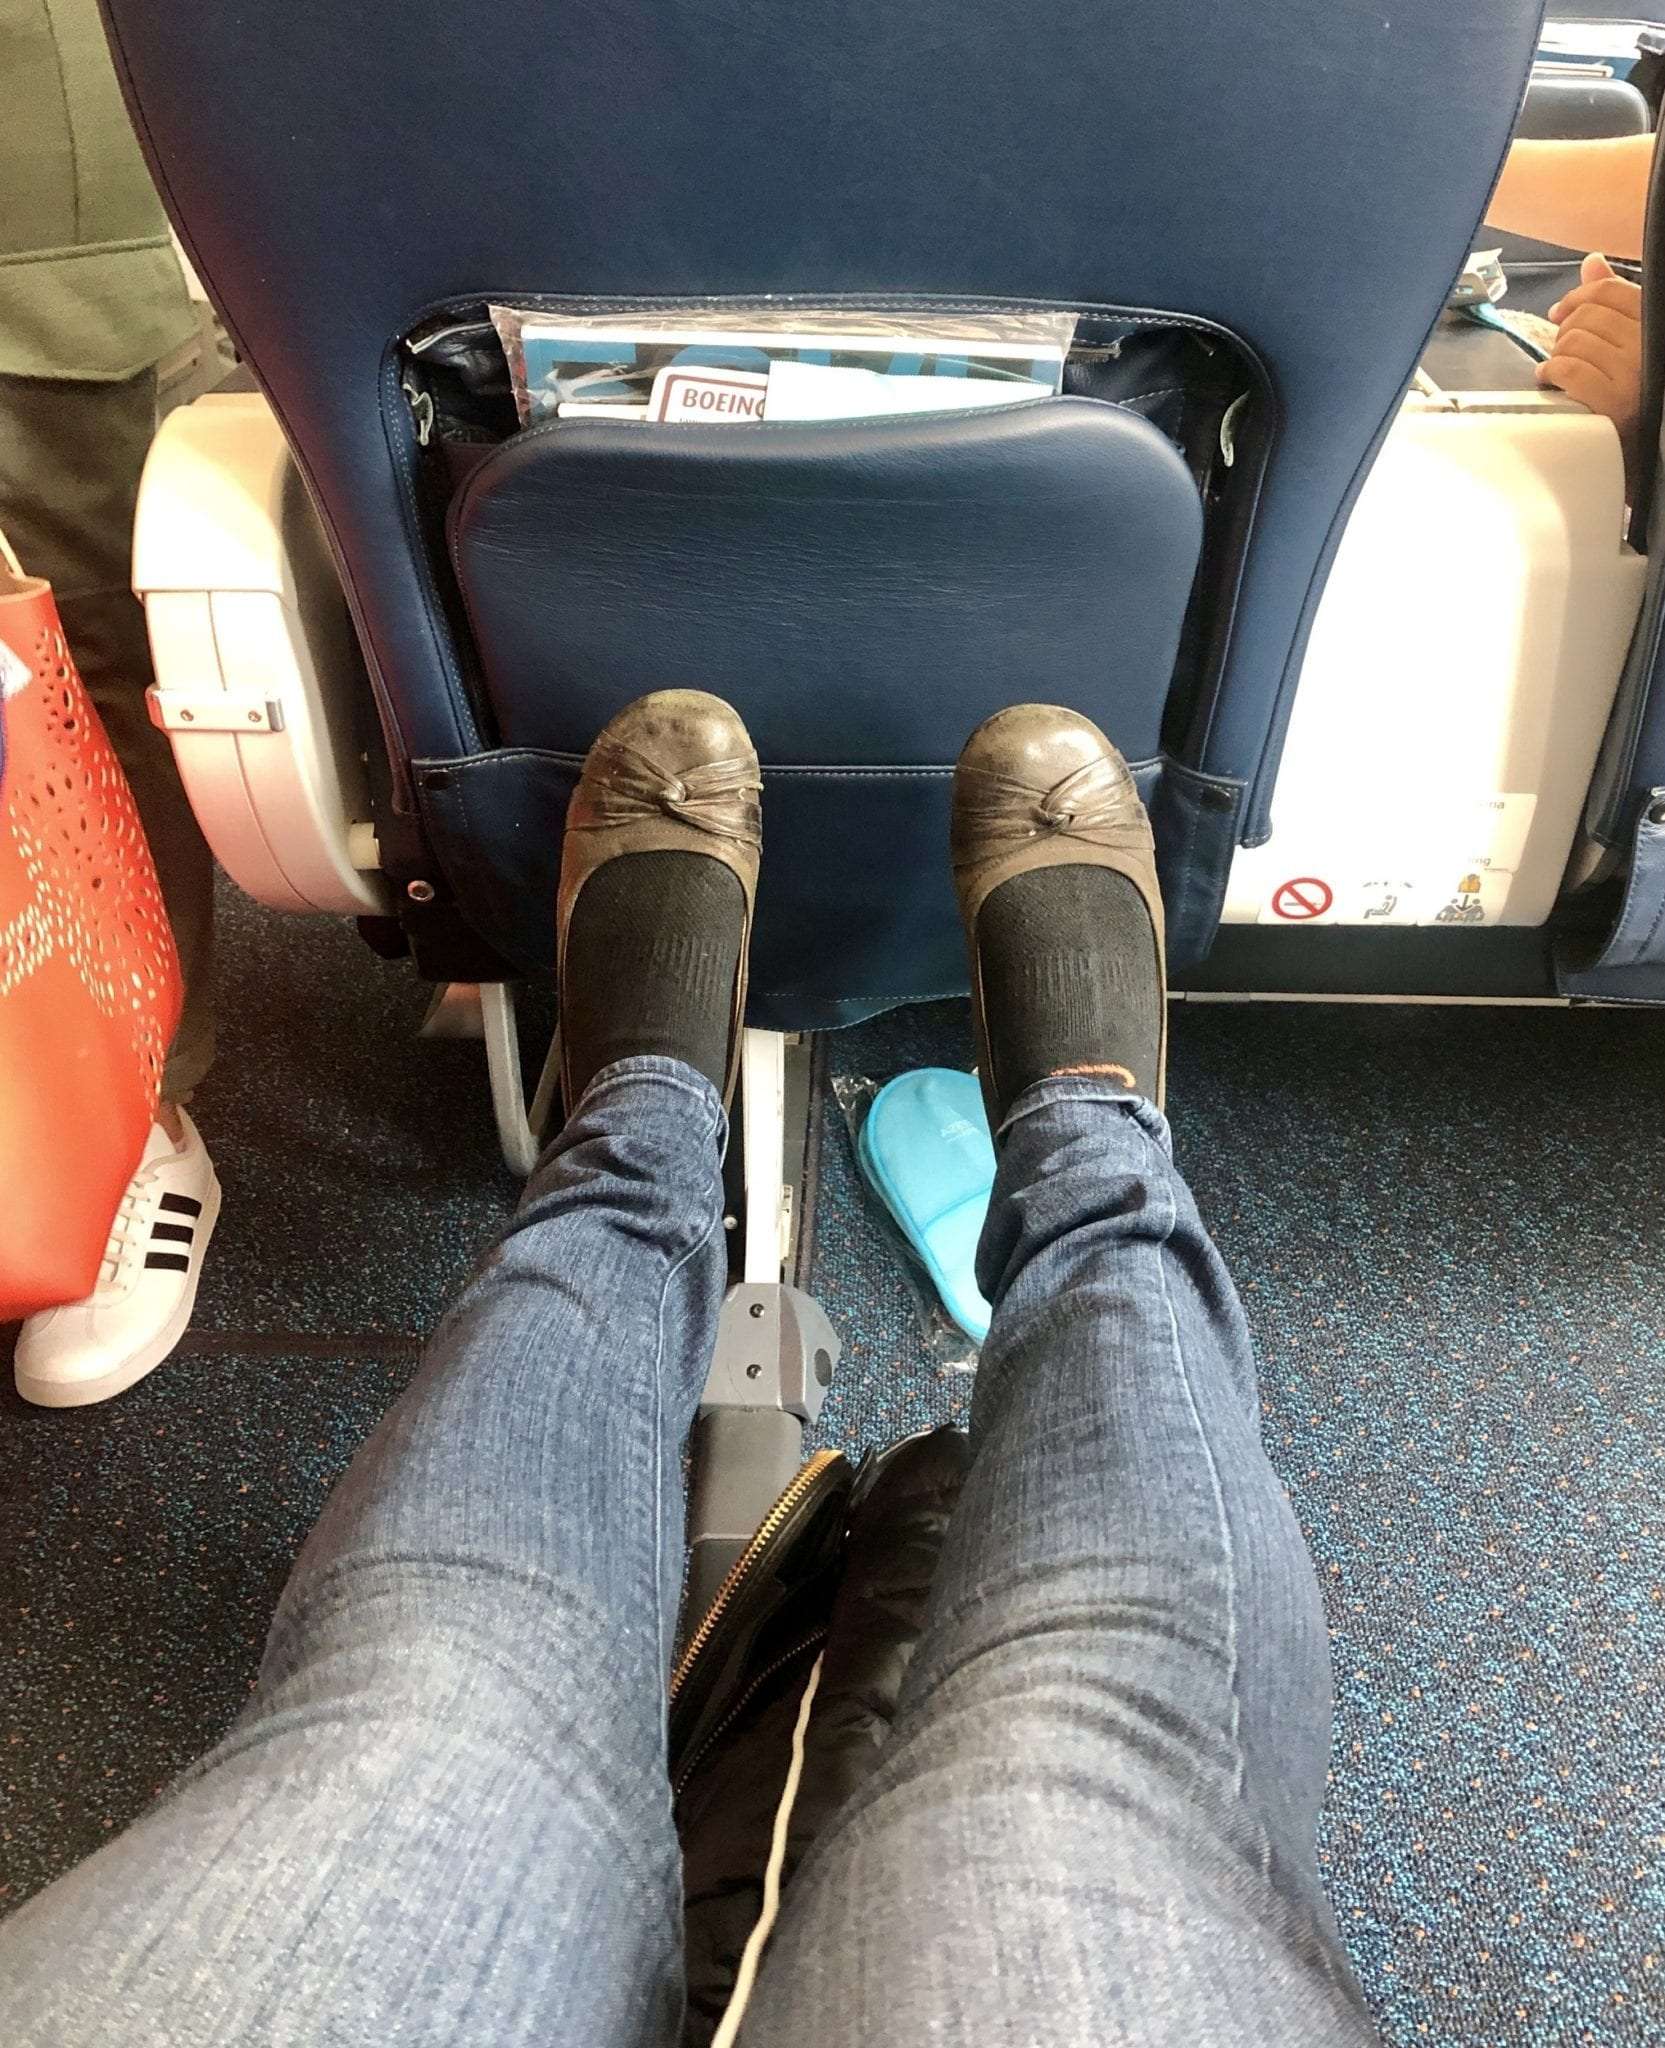 Kate stretches out her legs in her seat on Azerbaijan Airlines -- she's five foot four and her feet can't reach the seat in front of her.